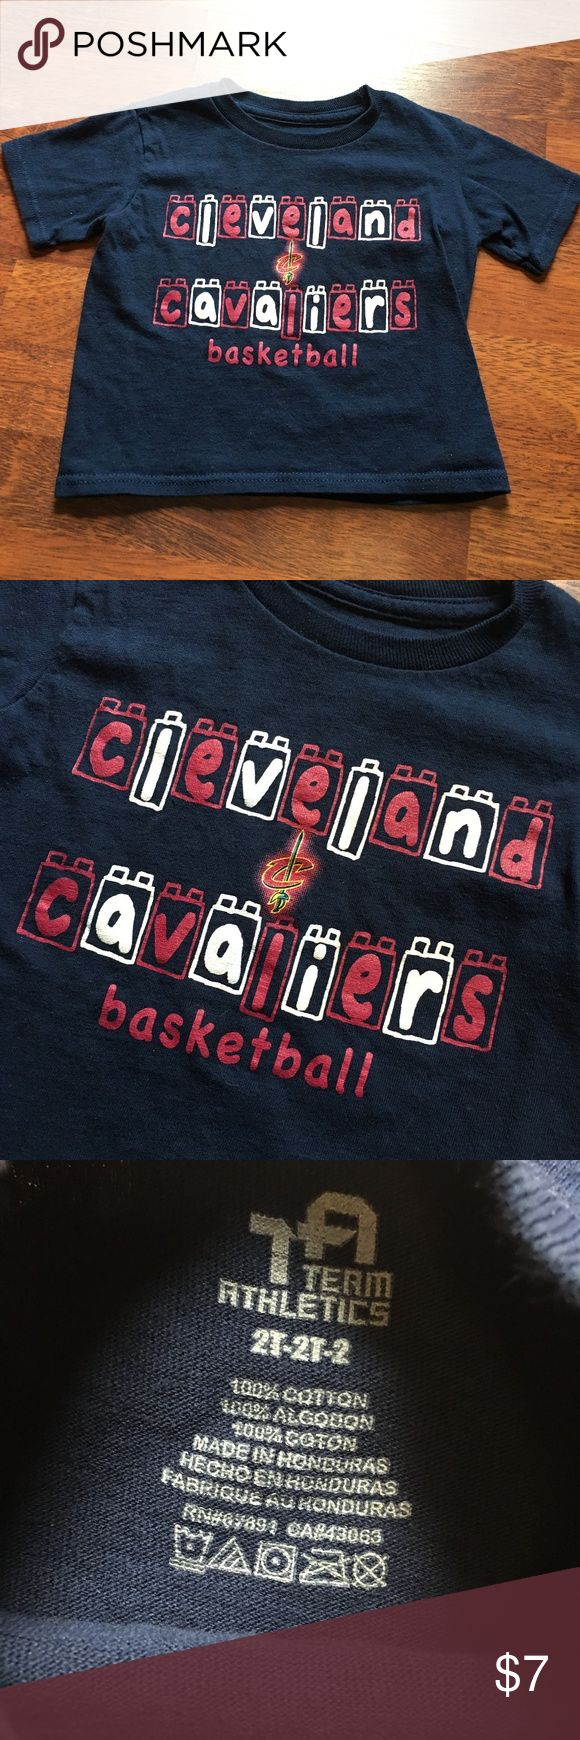 Team Athletics Cleveland Cavaliers T-Shirt Blocks Excellent used condition Cleveland Cavaliers t-shirt. Small bit of fuzziness. Sized 2T. 100% cotton. Team Athletics Shirts & Tops Tees - Short Sleeve